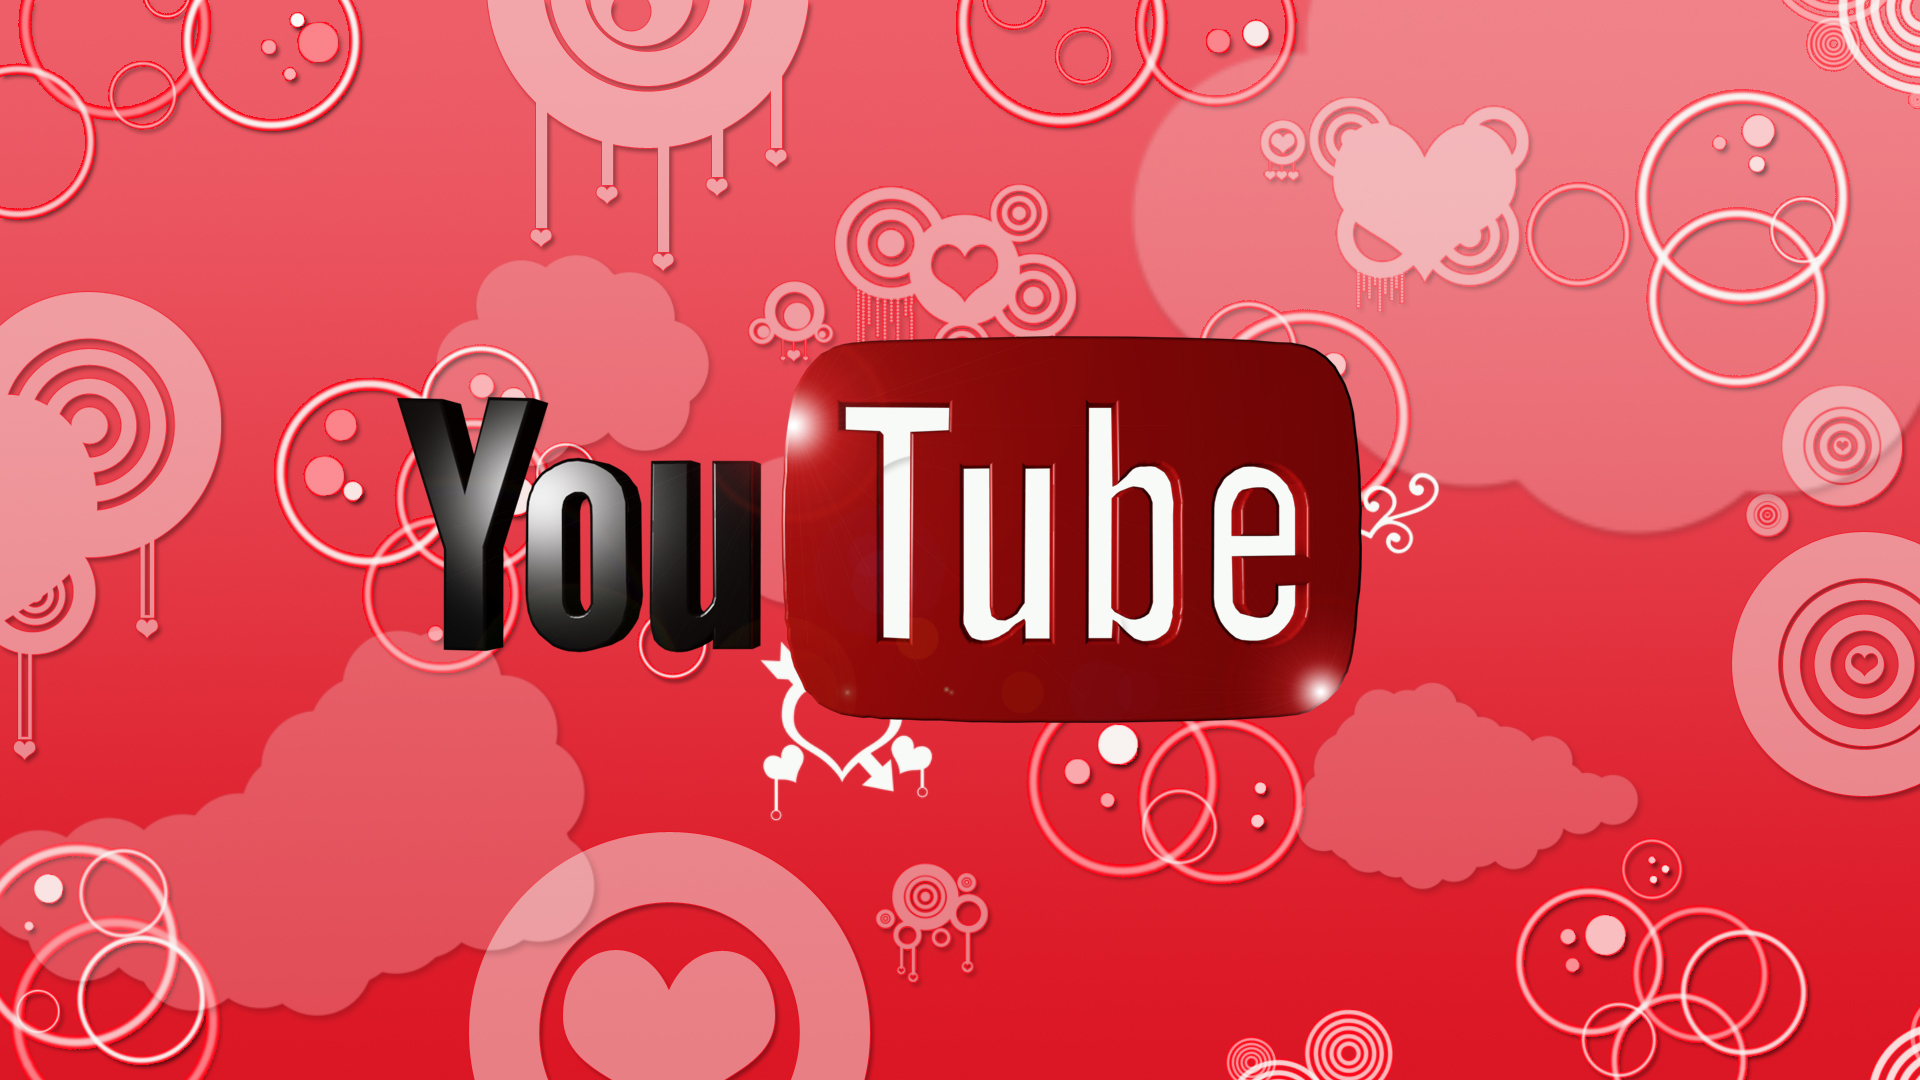 youtube wallpapers images photos pictures backgrounds